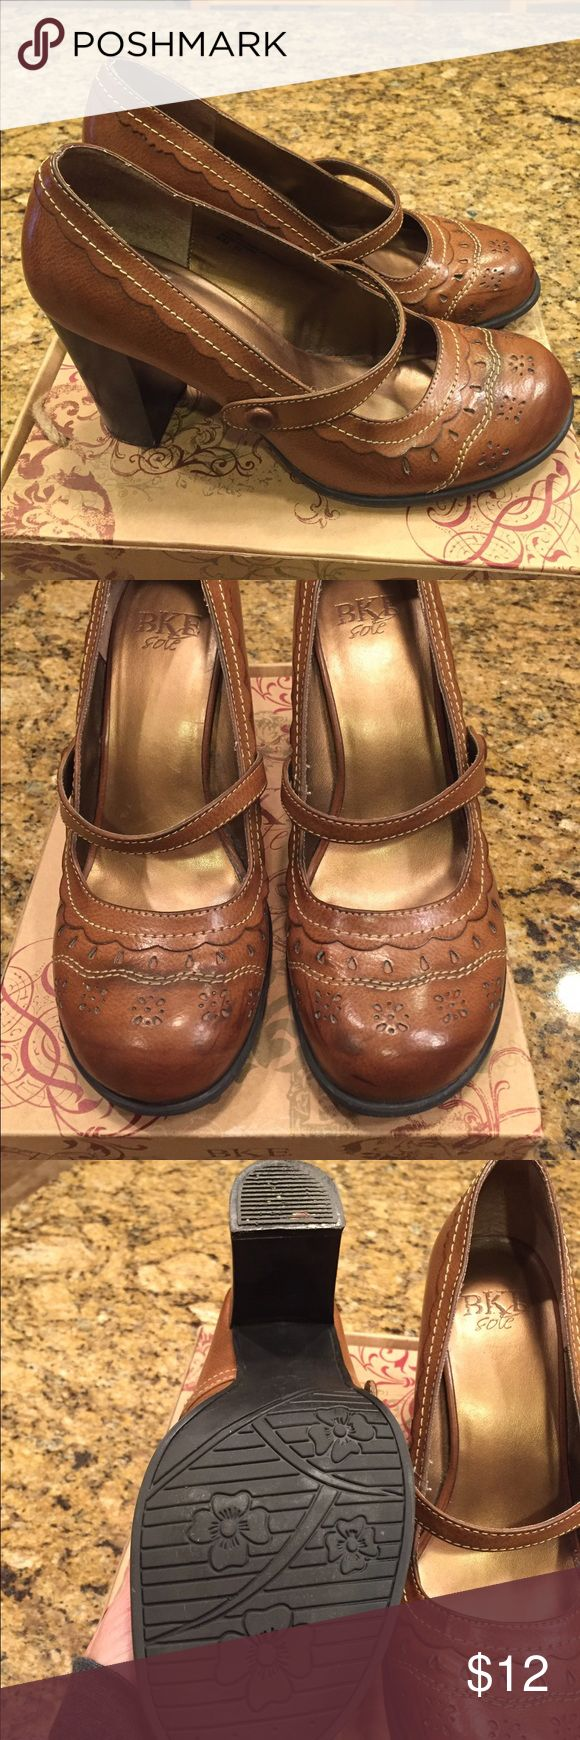 Women's Mary Jane Heels BKE women's Mary Jane heels. Man made material. Not Leather. Wood heel. Excellent condition. BKE Shoes Heels